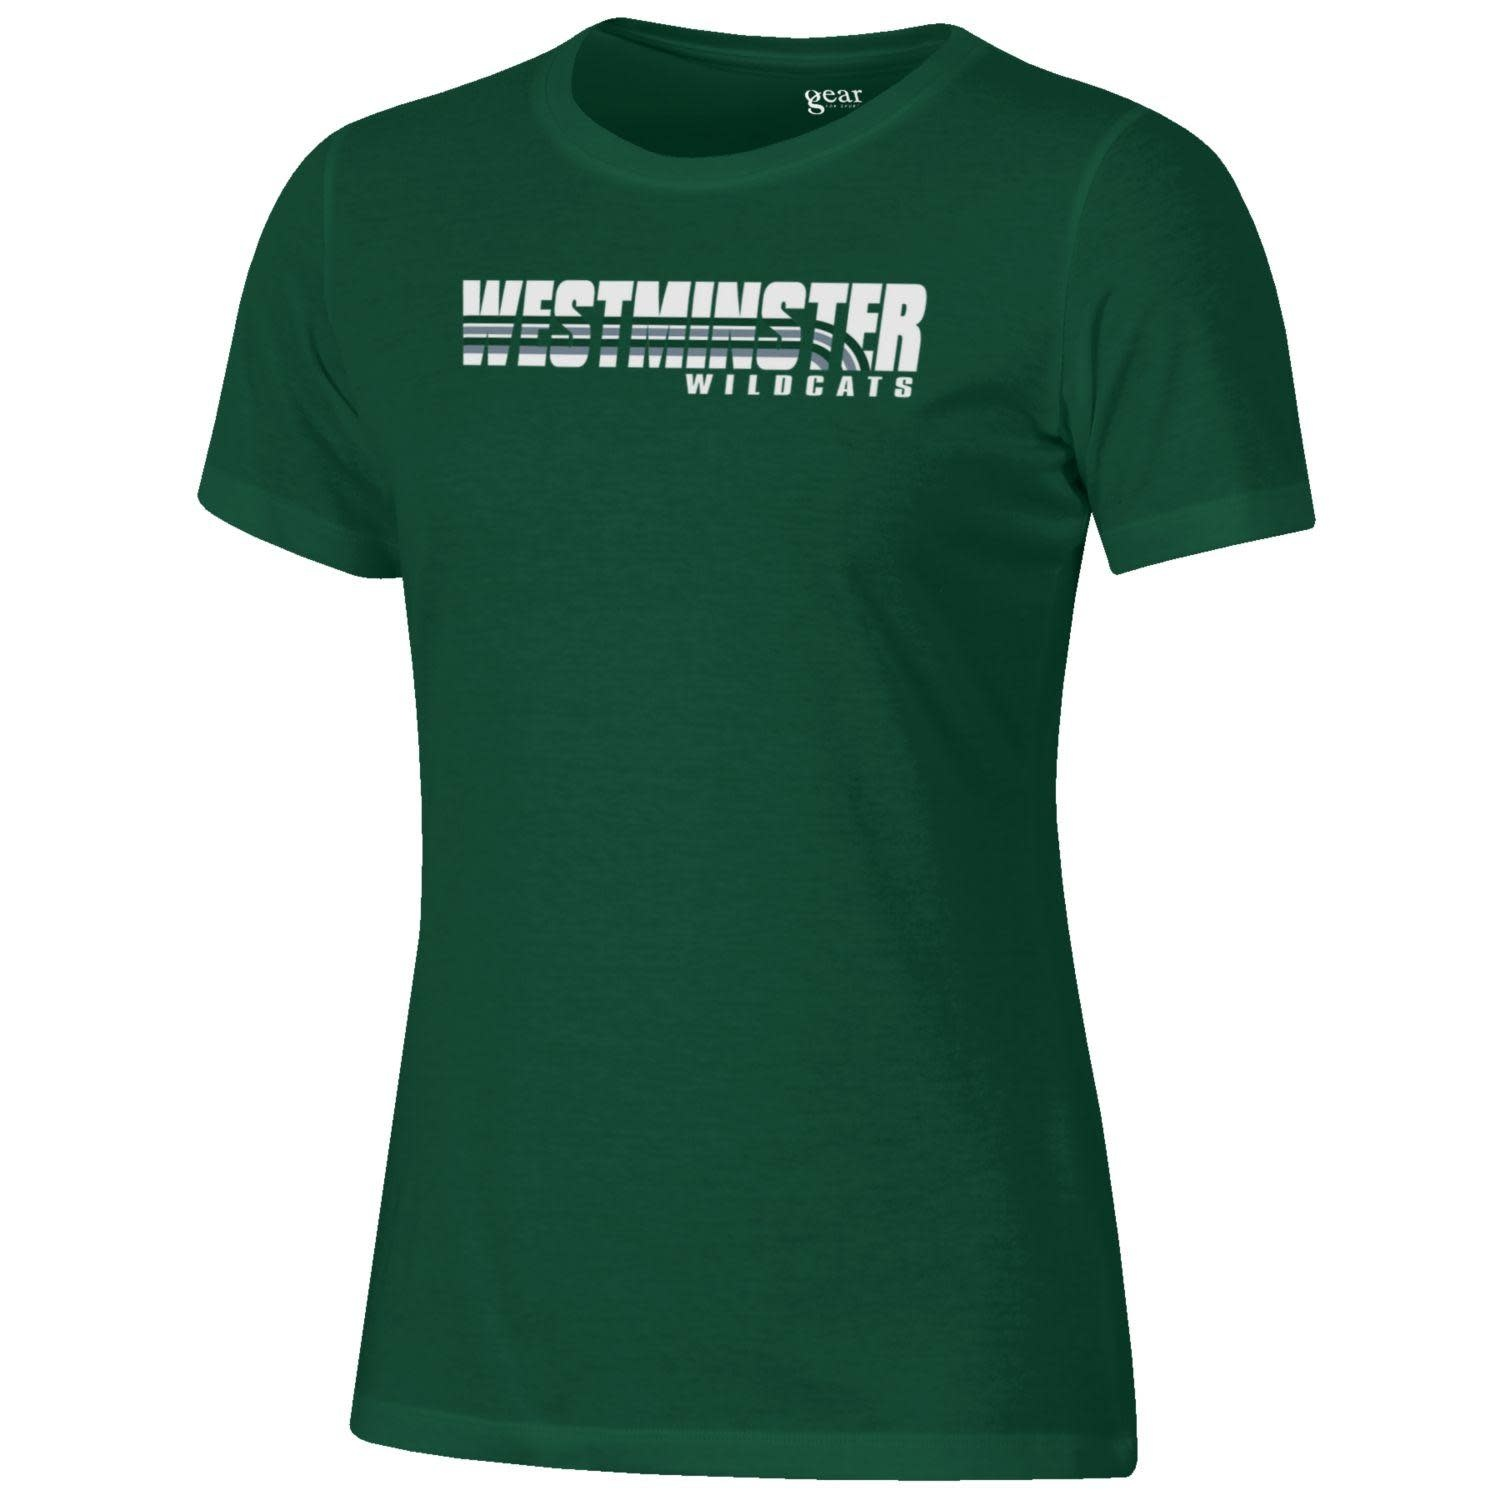 Under Armour T: Women's Relax Short Sleeve, Green, Westminster with lines